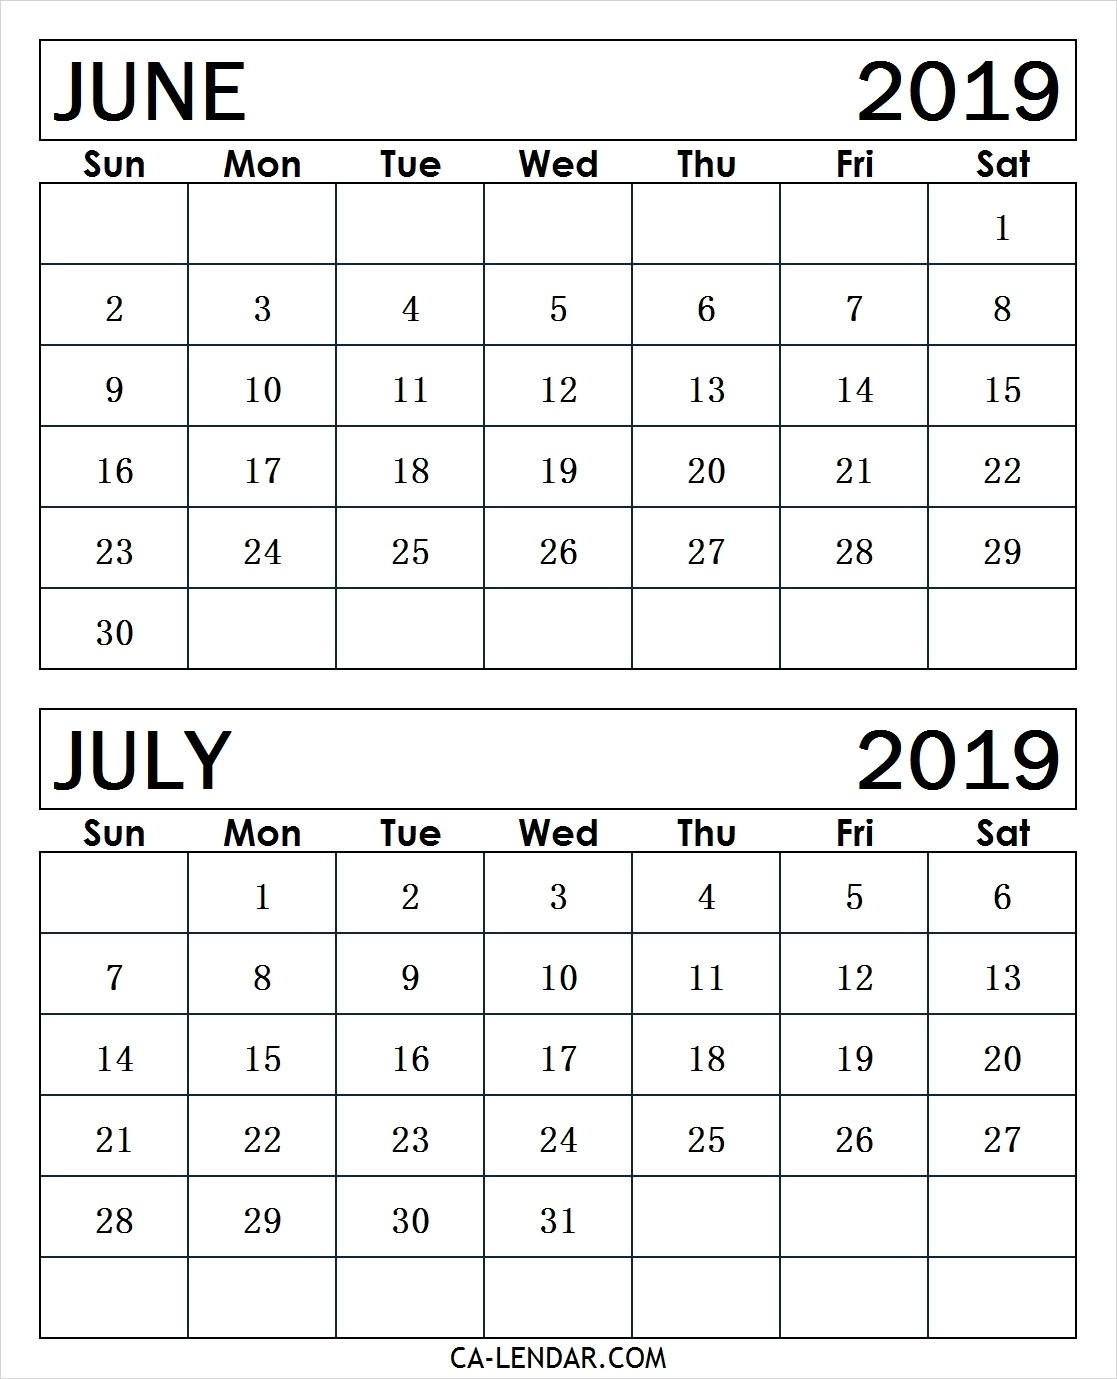 Printable June And July 2019 Calendar Monthly Templates - Calendar intended for Calender For June And July